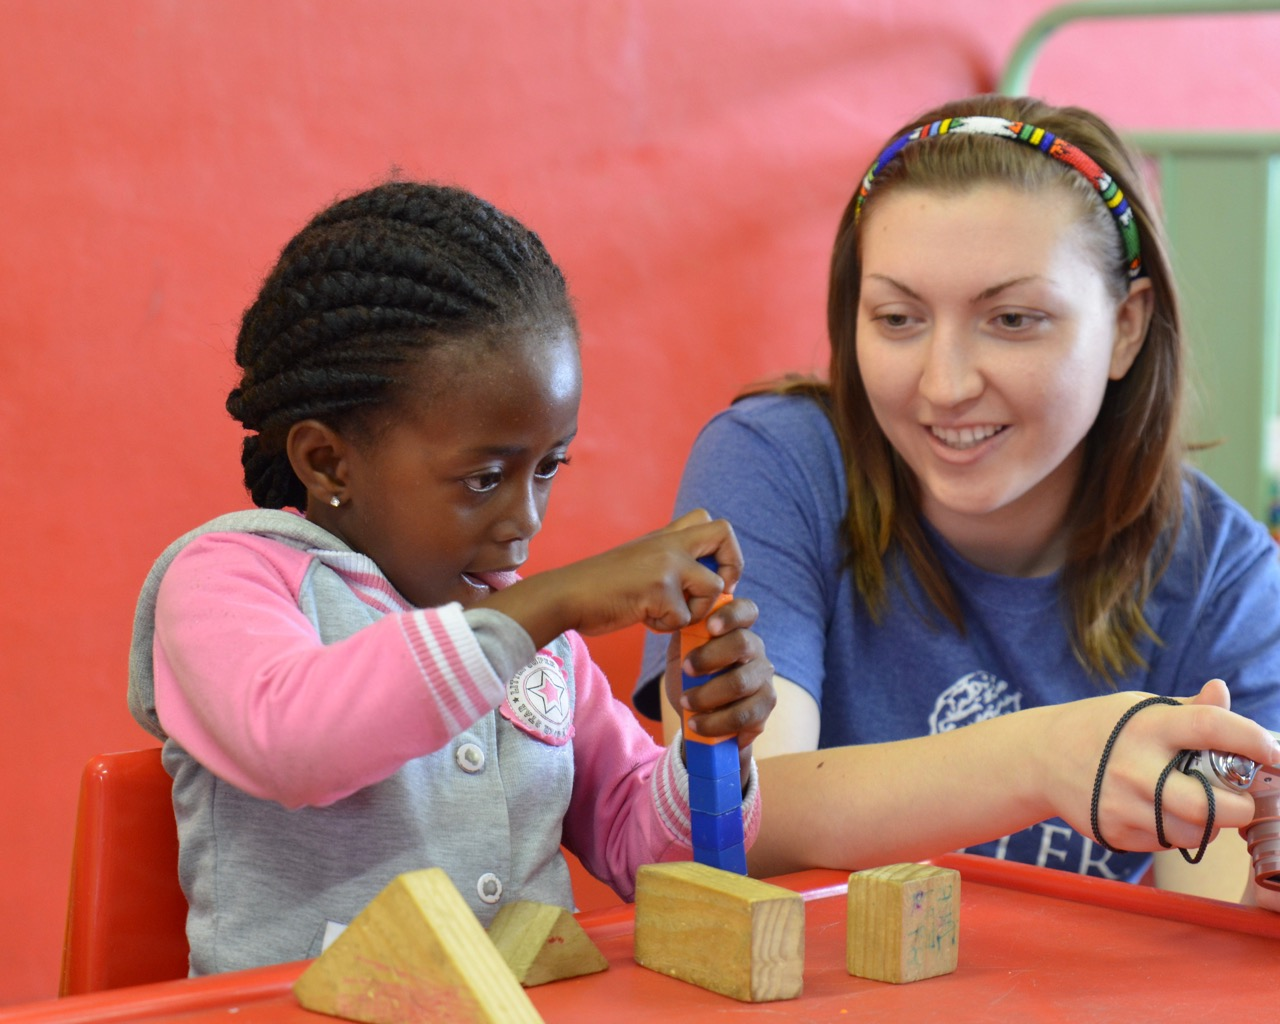 Hannah working with children in South Africa (2015)